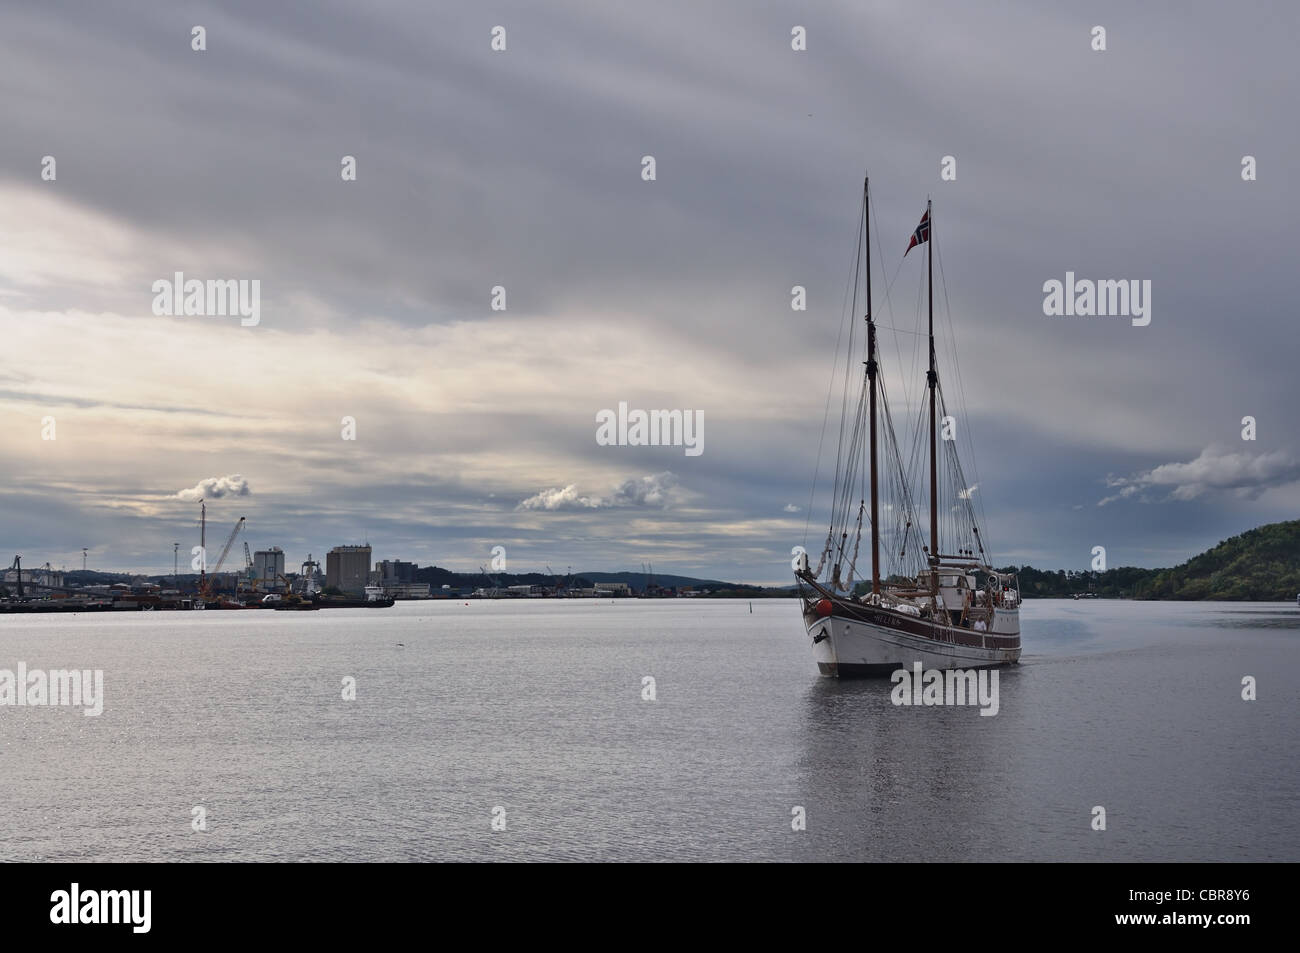 Oslo: sailing vessel in the waters of Oslofjord Stock Photo